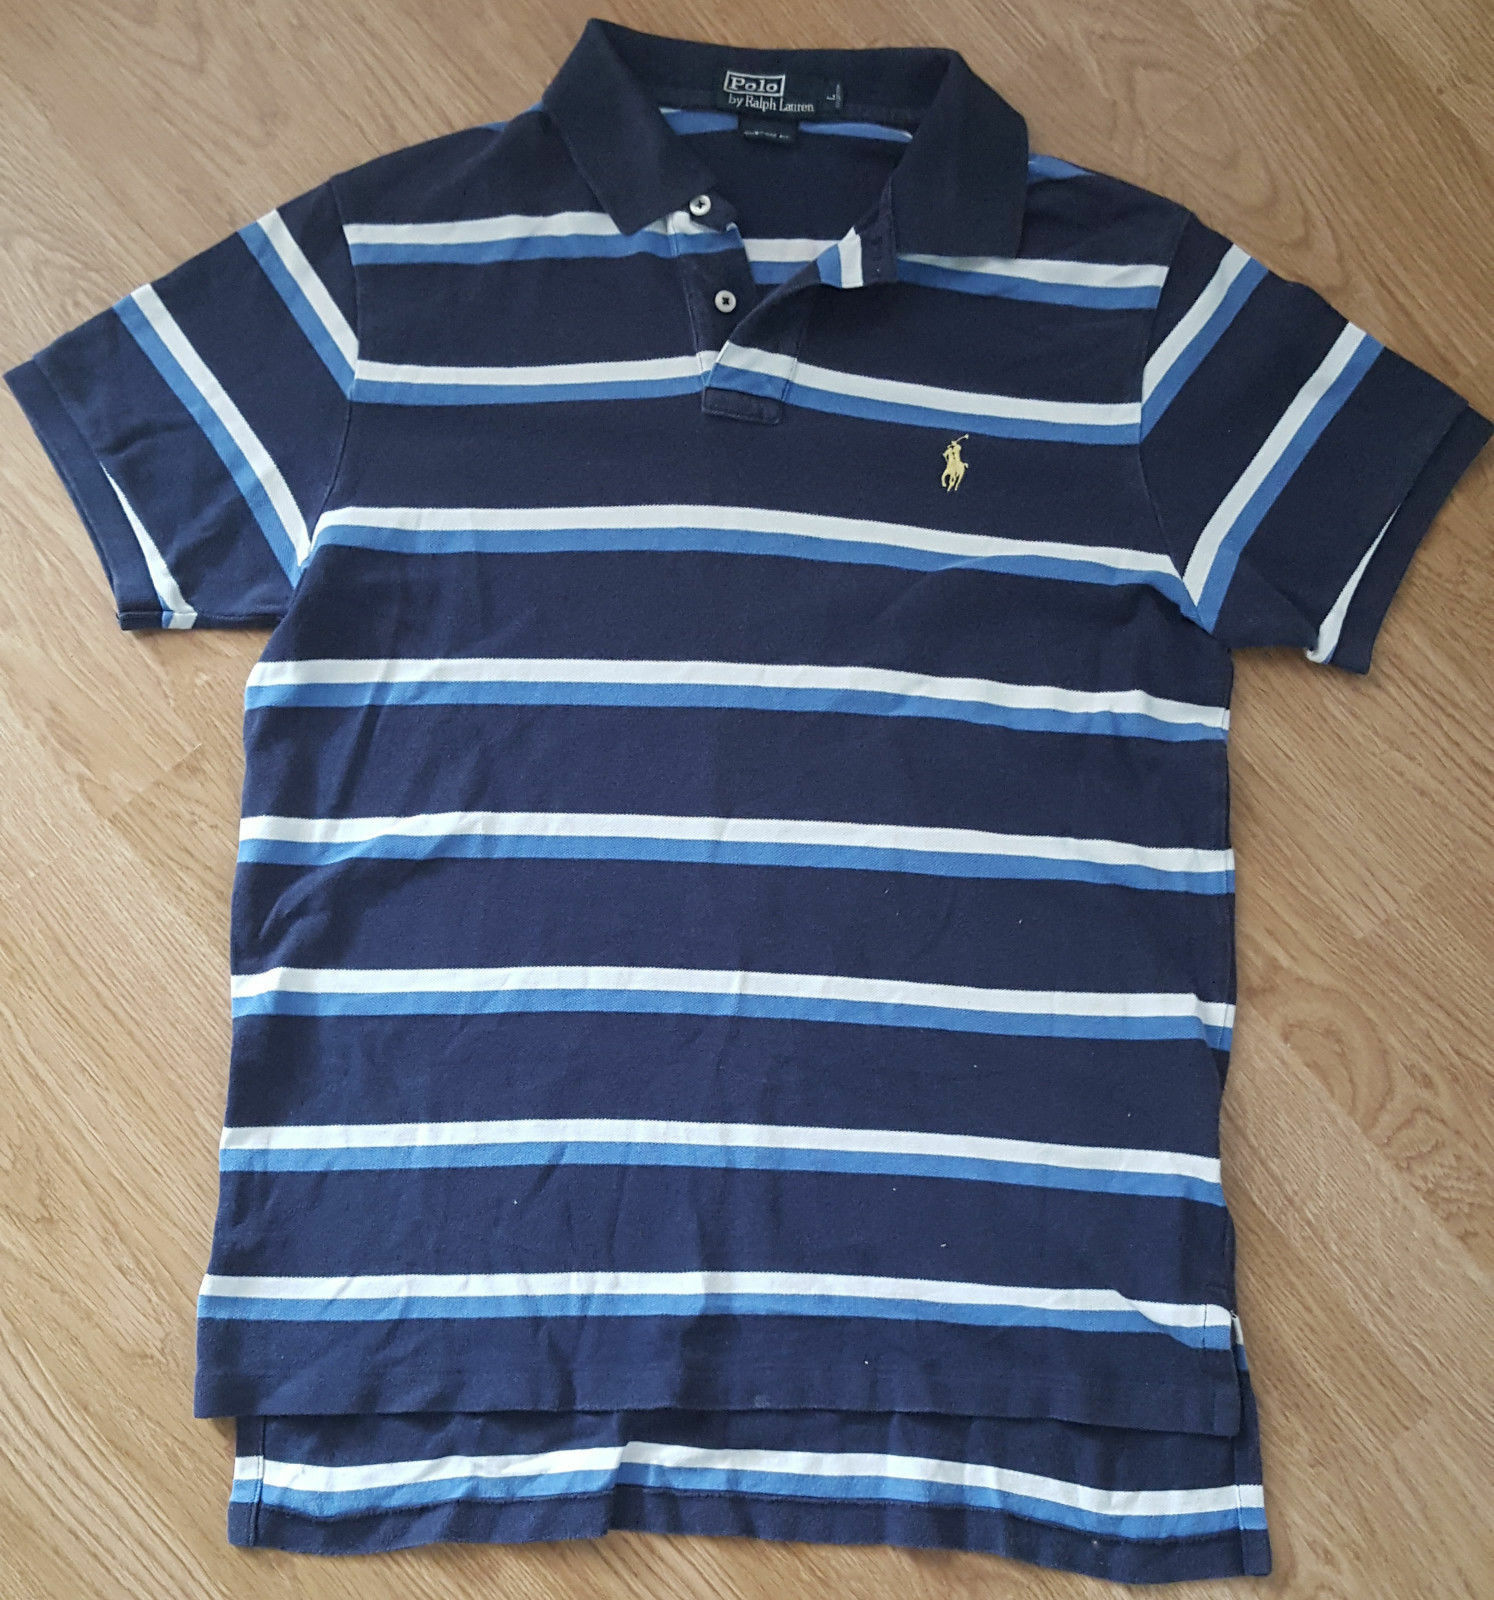 Ralph LAUREN POLO T Shirt Tee Top Maniche Corte Blu Navy A Righe Taglia L